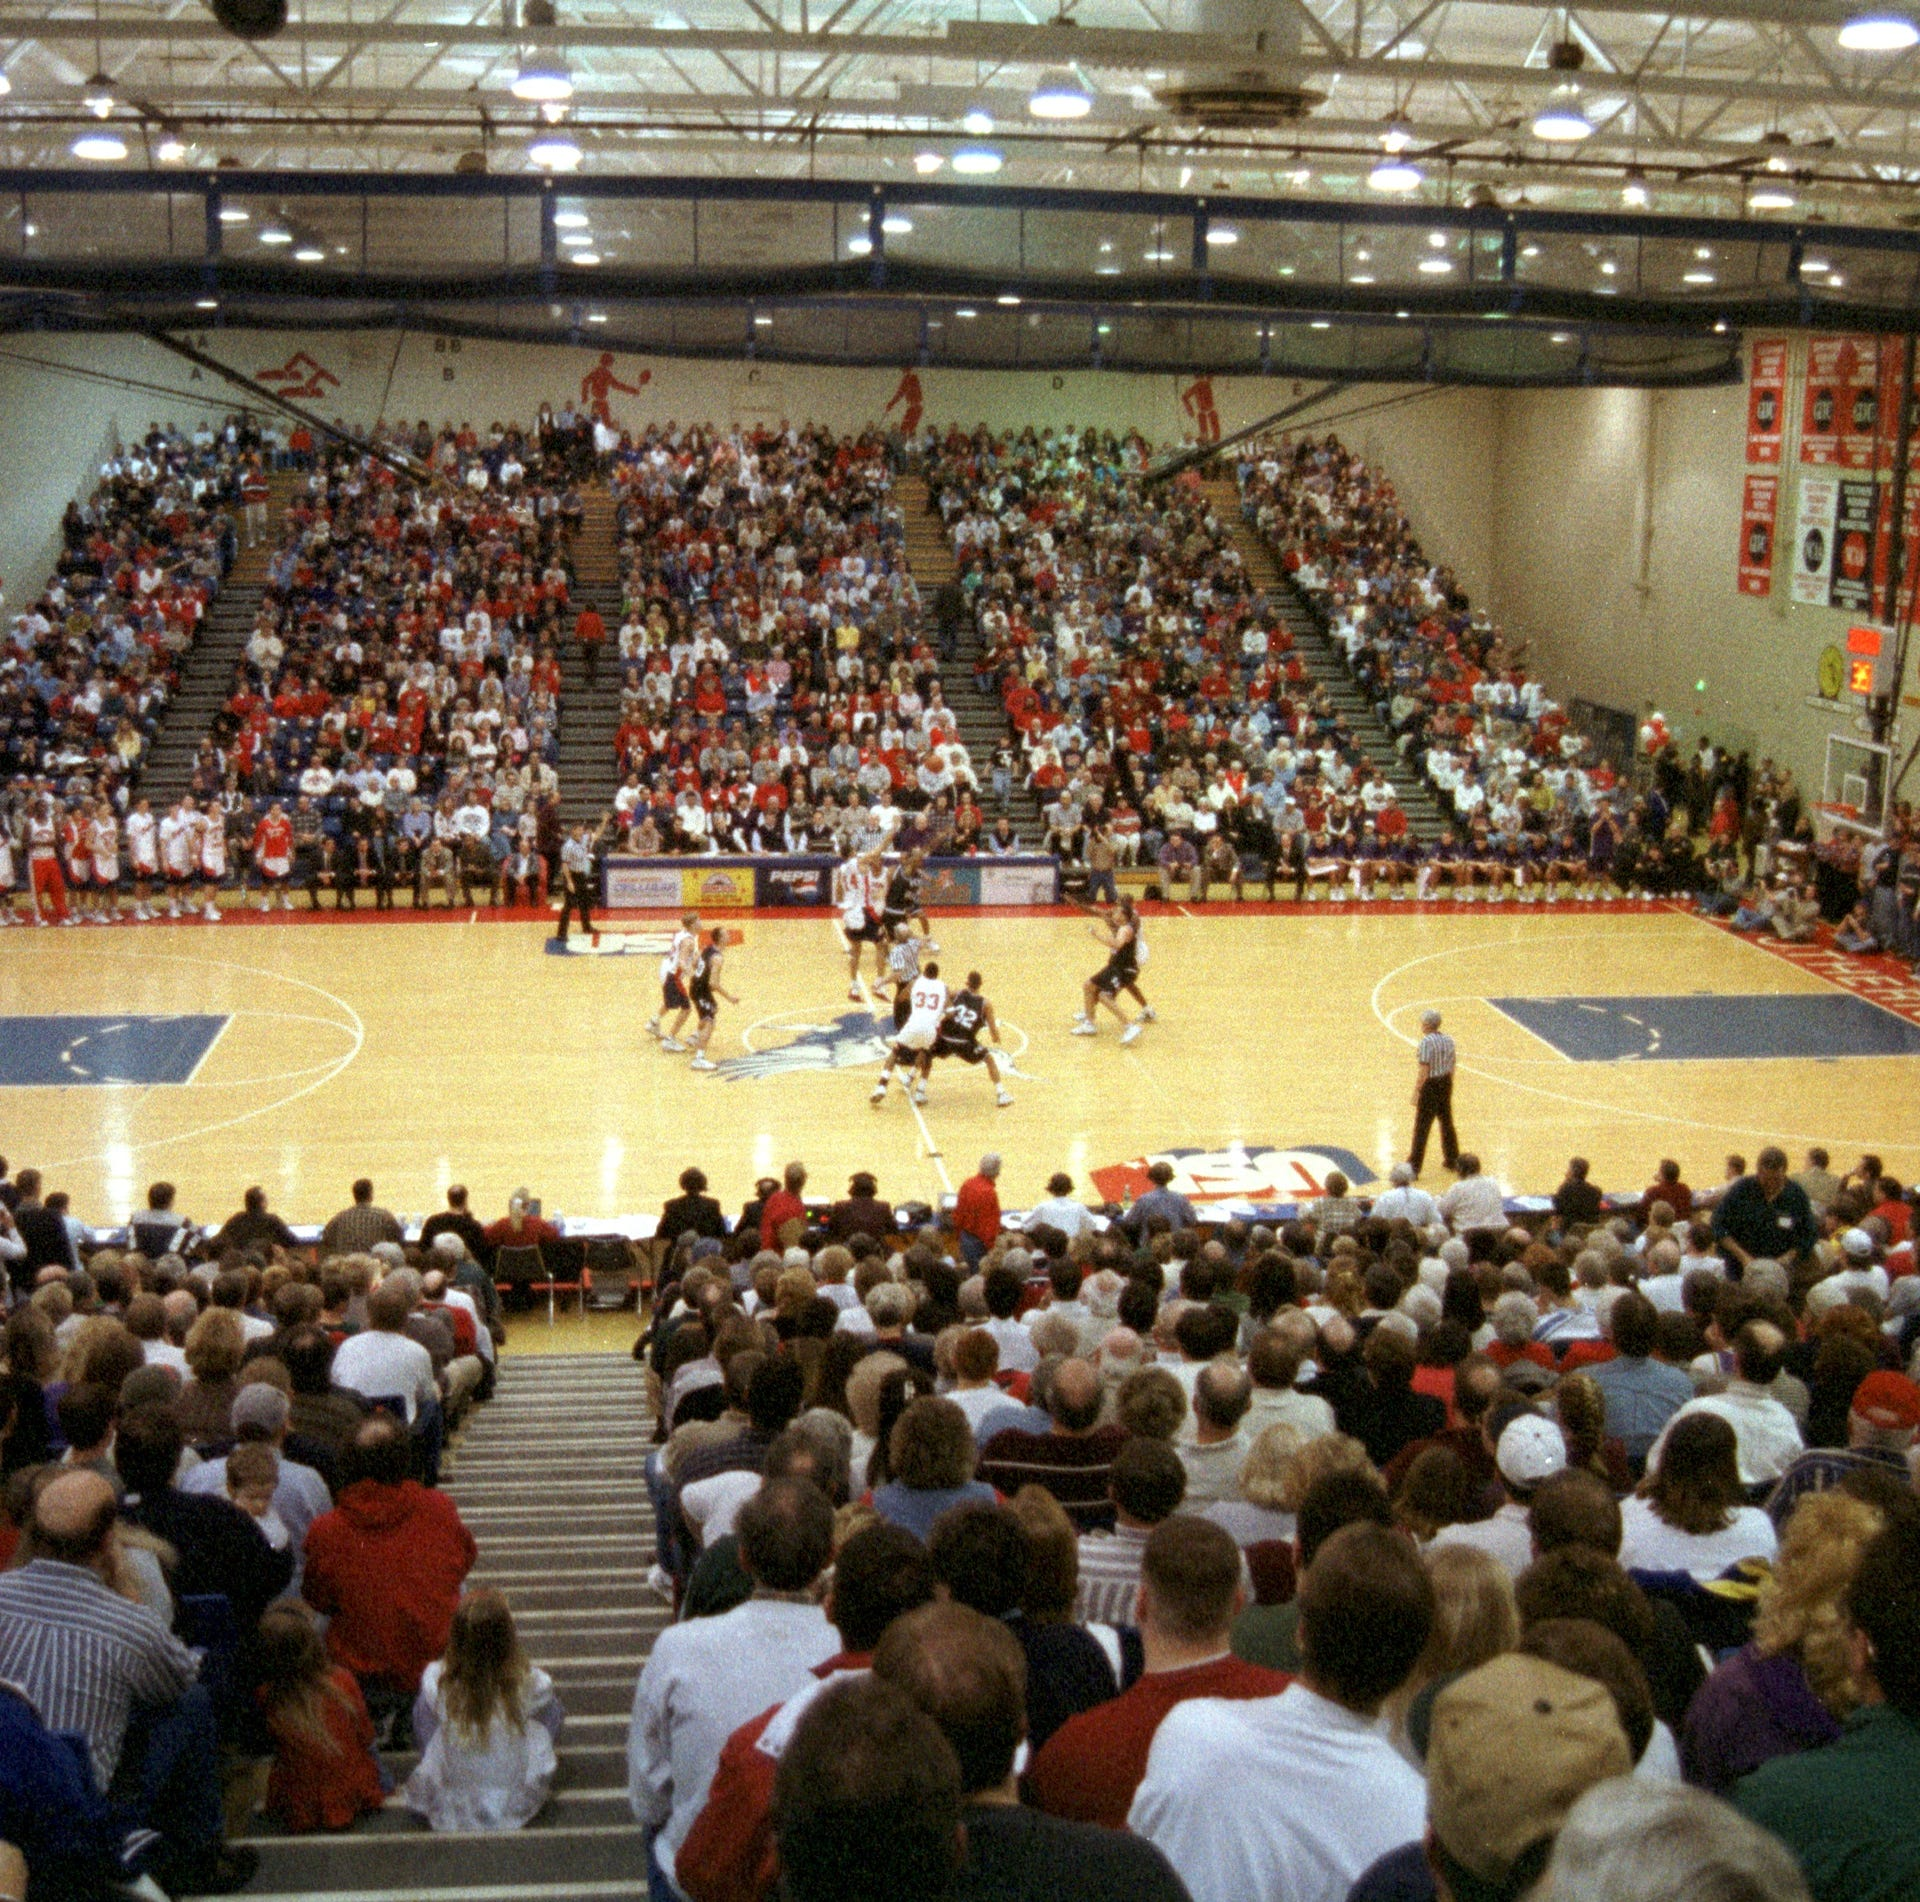 Farewell to USI's Physical Activities Center, home of the Screaming Eagles for 39 years